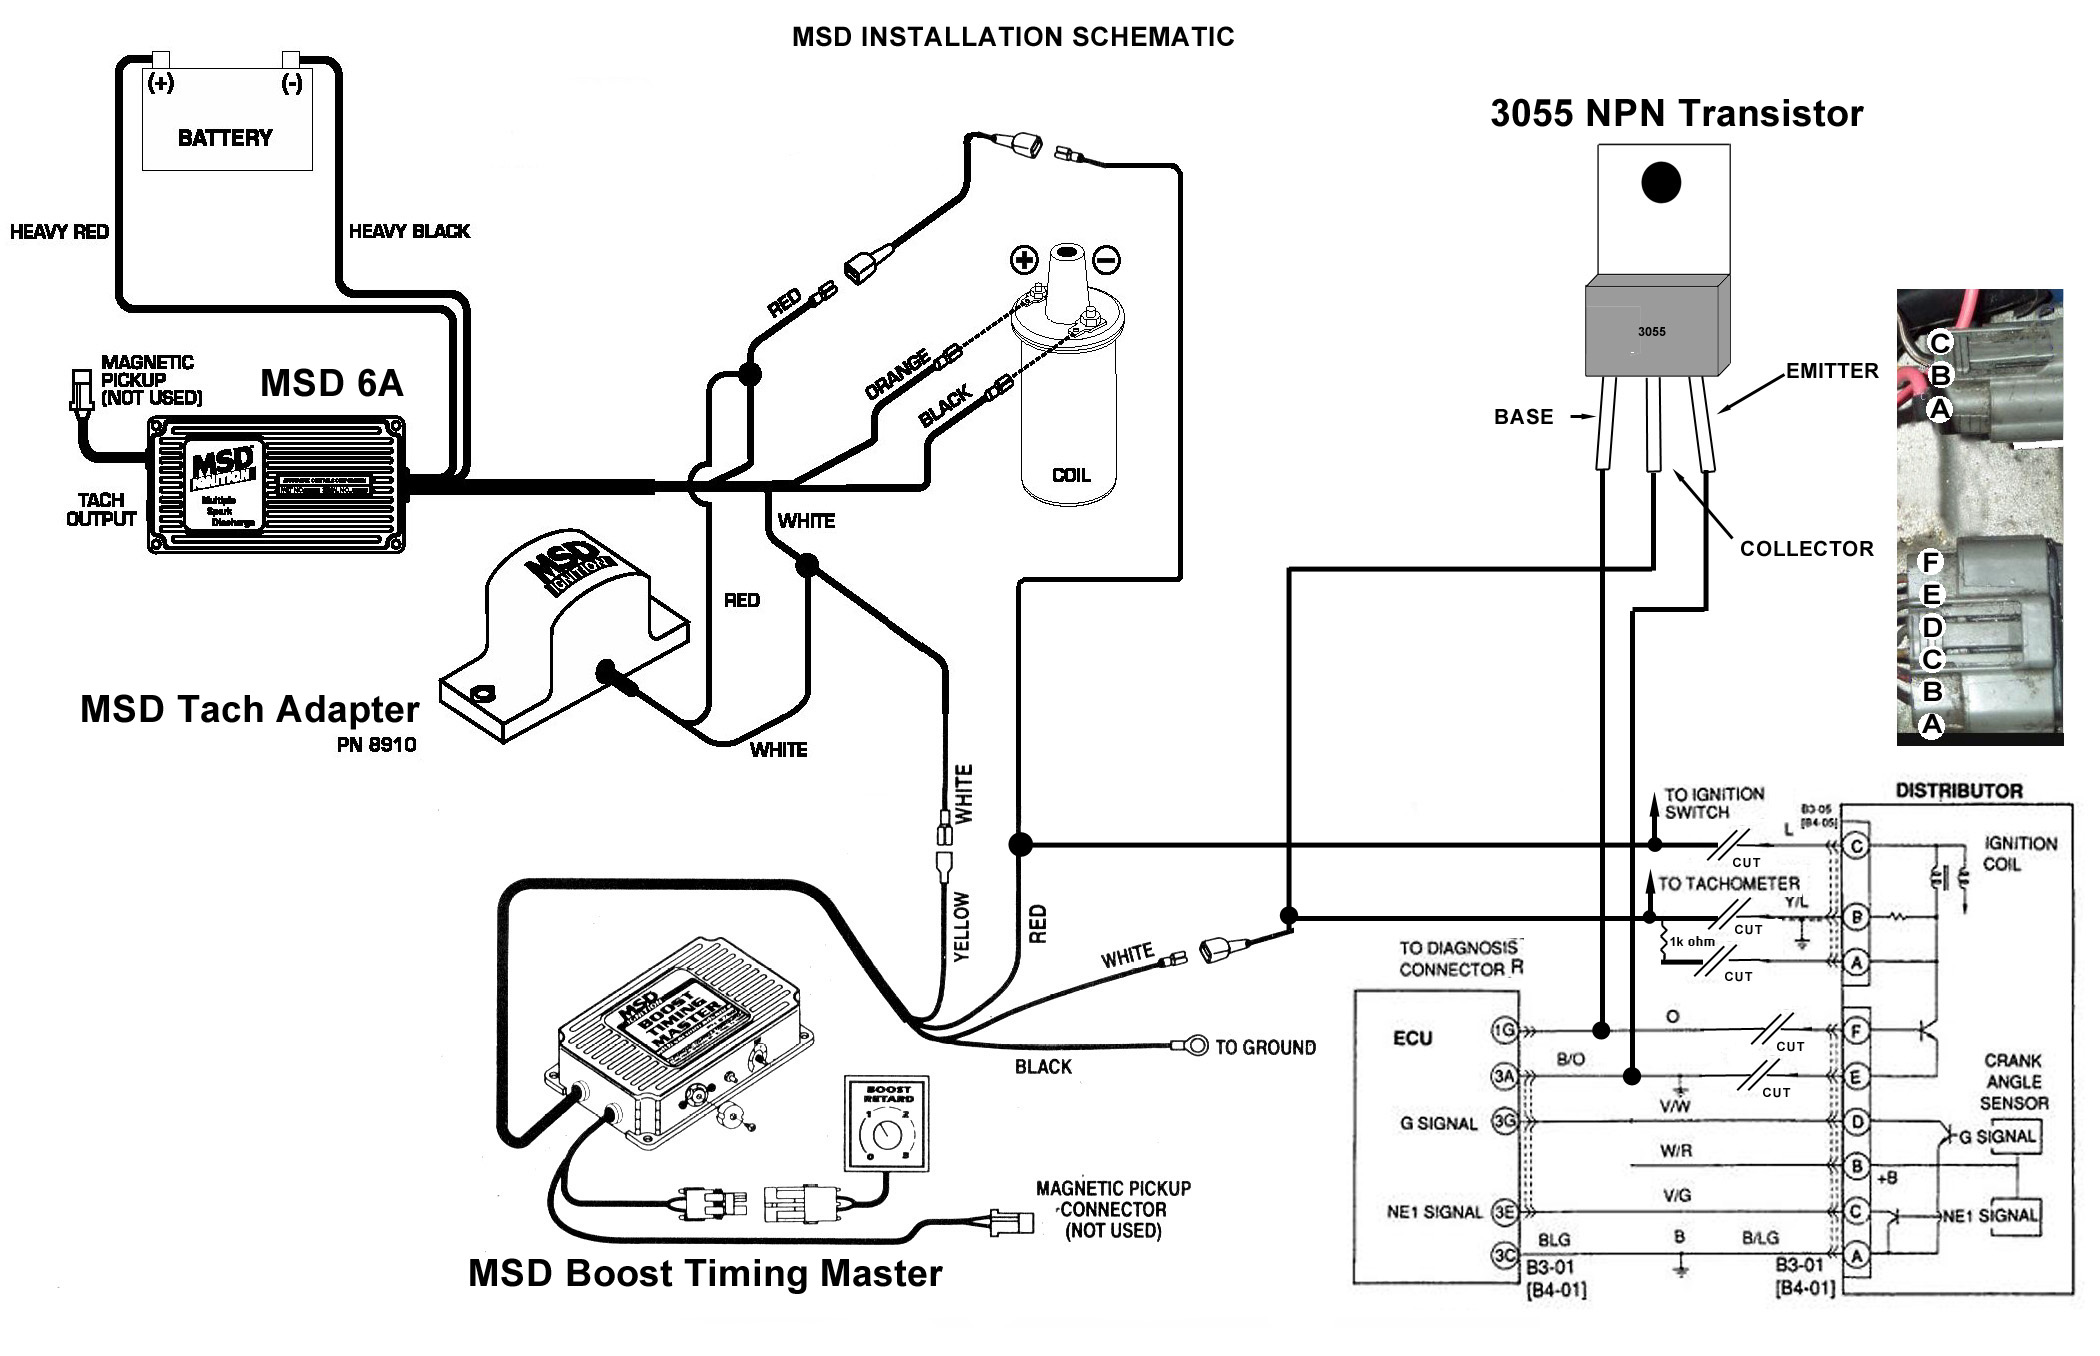 msd_complete msd wiring diagram mazda mx 6 forum msd timing control wiring diagram at pacquiaovsvargaslive.co